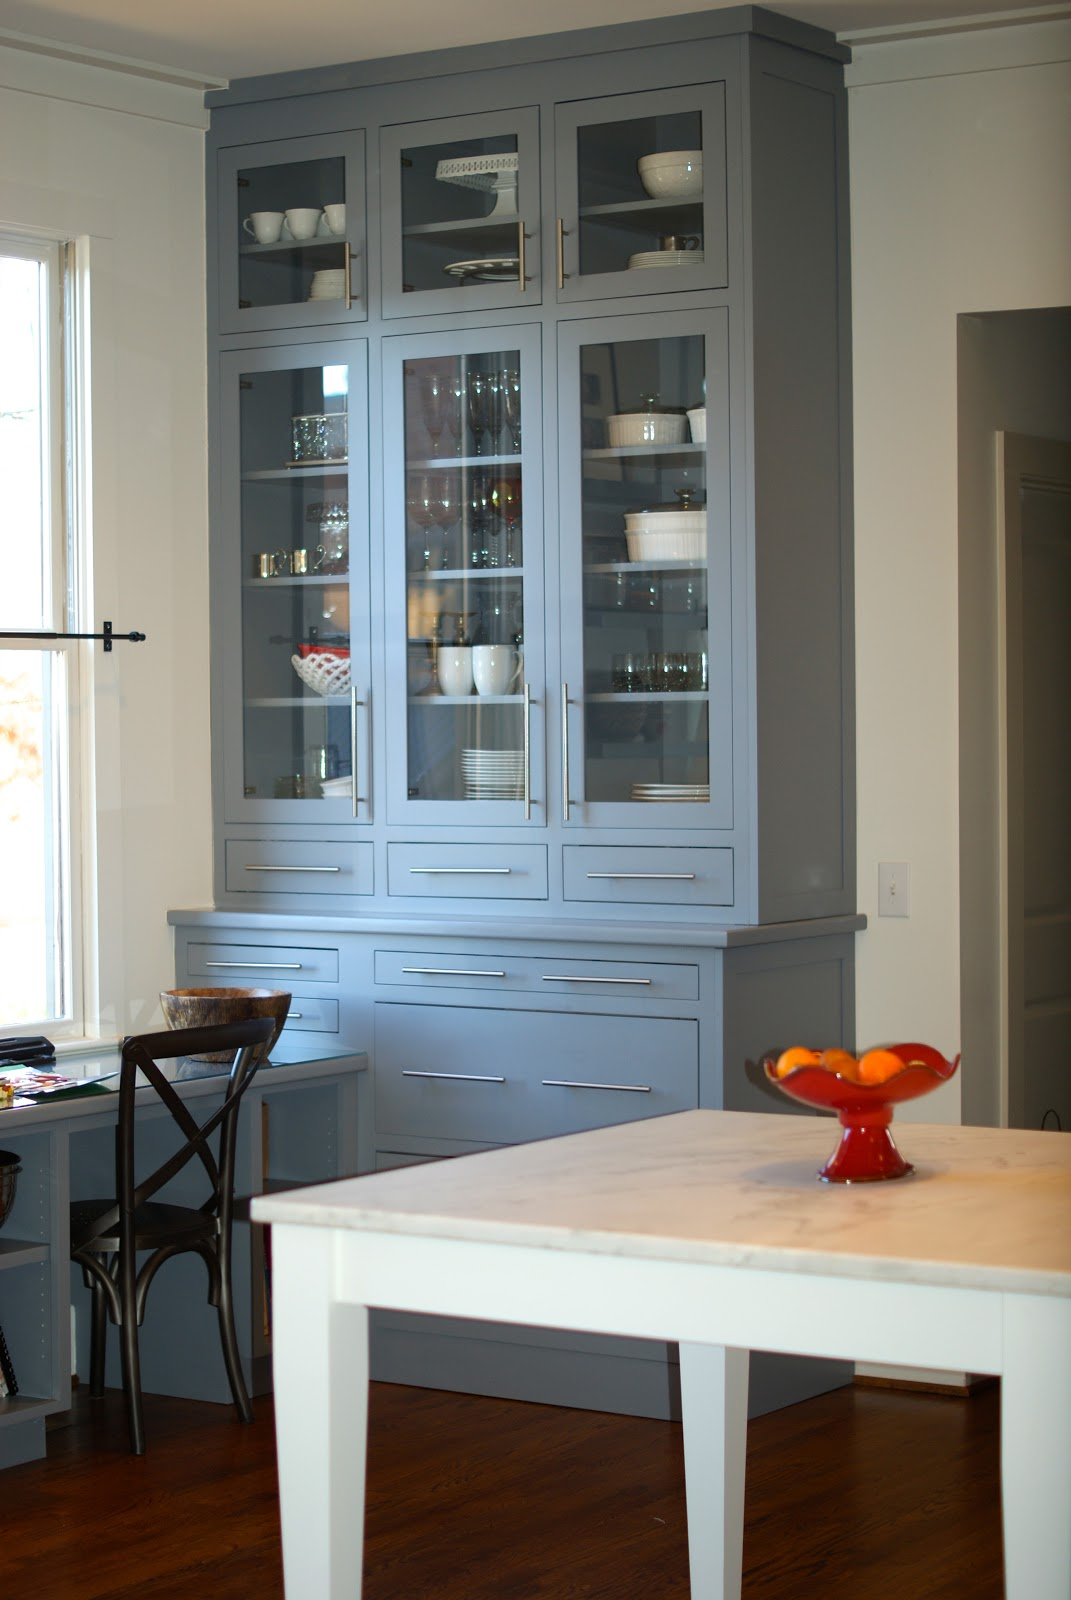 The Prickett Family} The Best From Our Nest: :: Kitchen Design ...